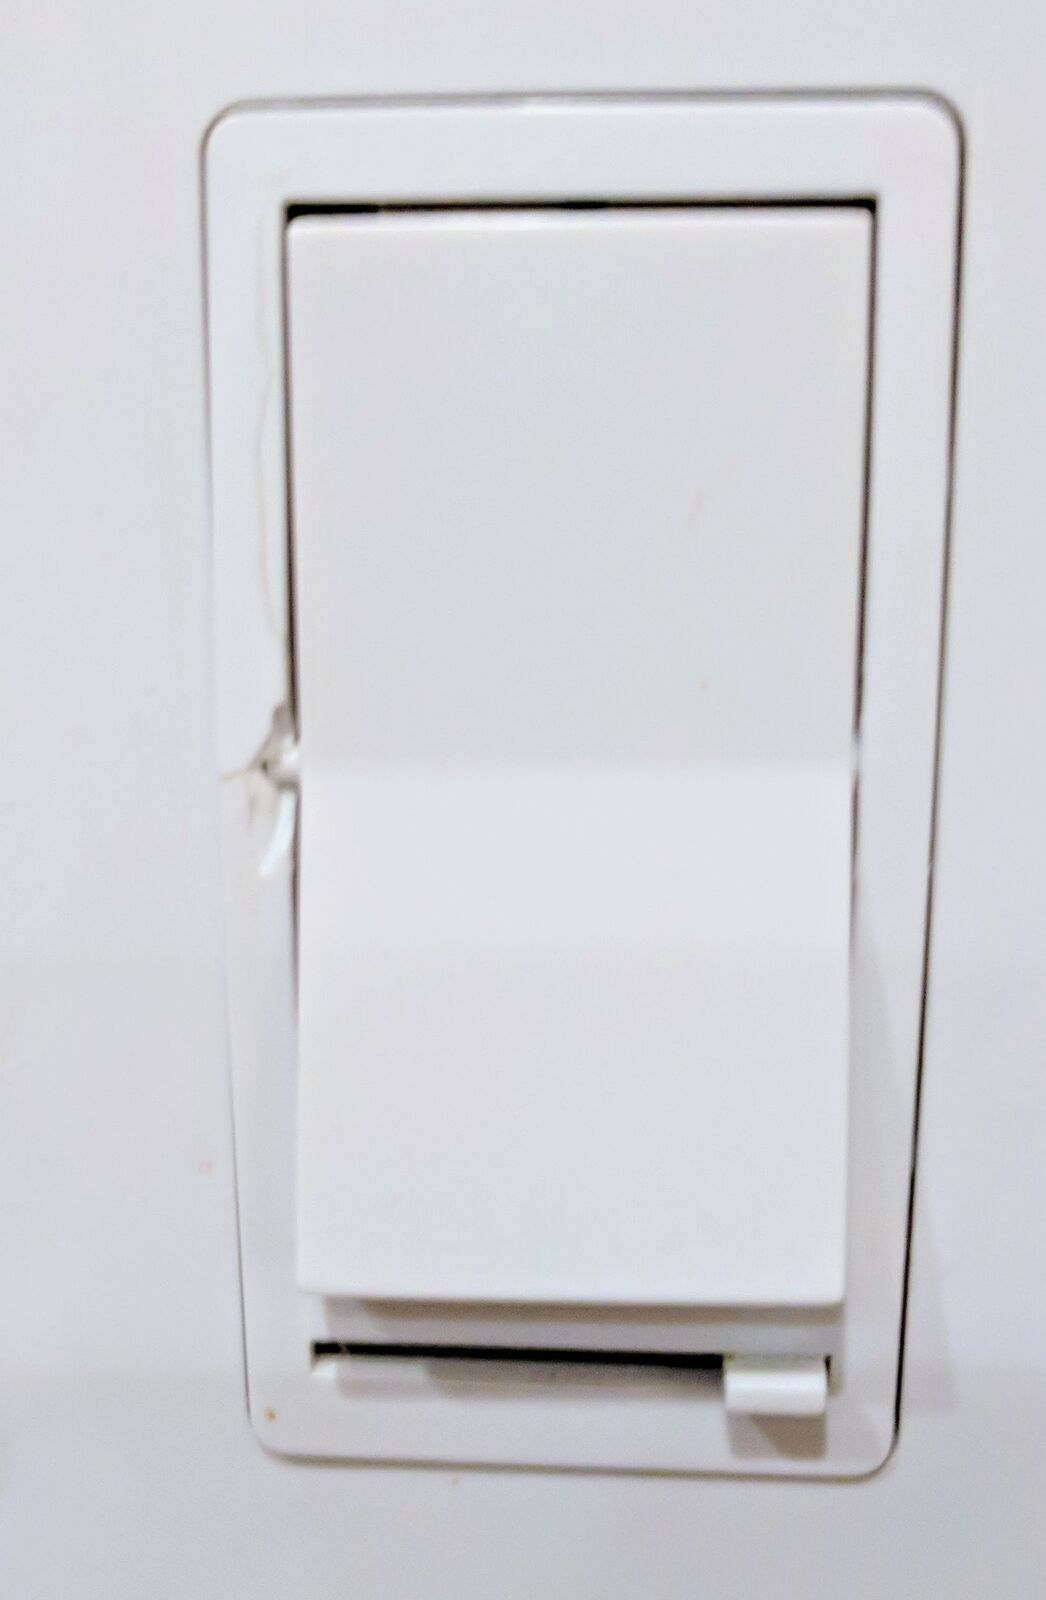 Reviews 2pk Feit Electric Dimmer Switch Ideal Led Lighting Wall 3 Way Flickering Plates 689406 Ebay